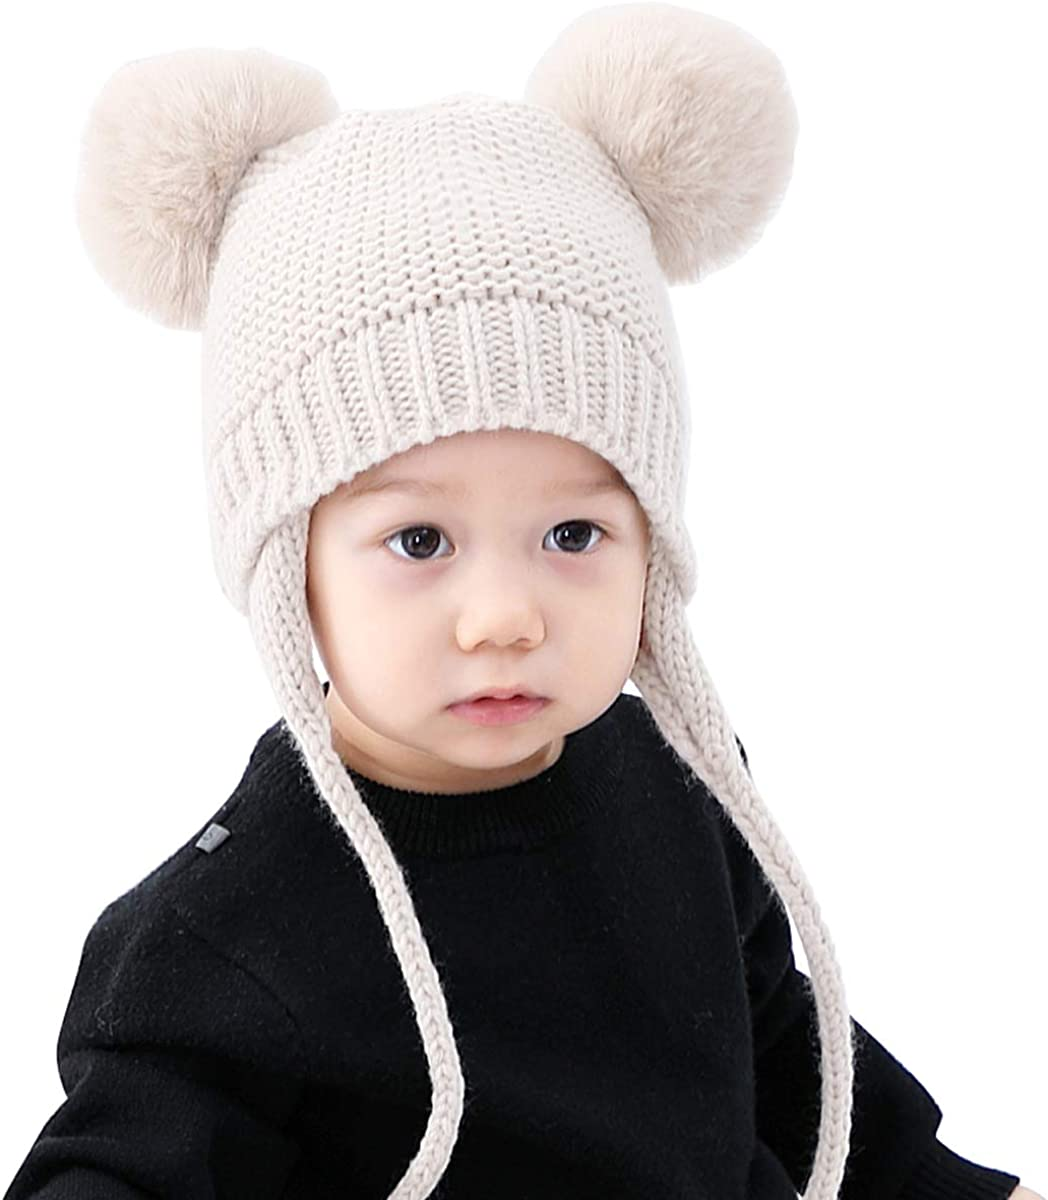 ROSEBEAR Max 79% OFF Baby Winter Hat Cap Stretchy Warm Knitted Beani Max 42% OFF Chunky